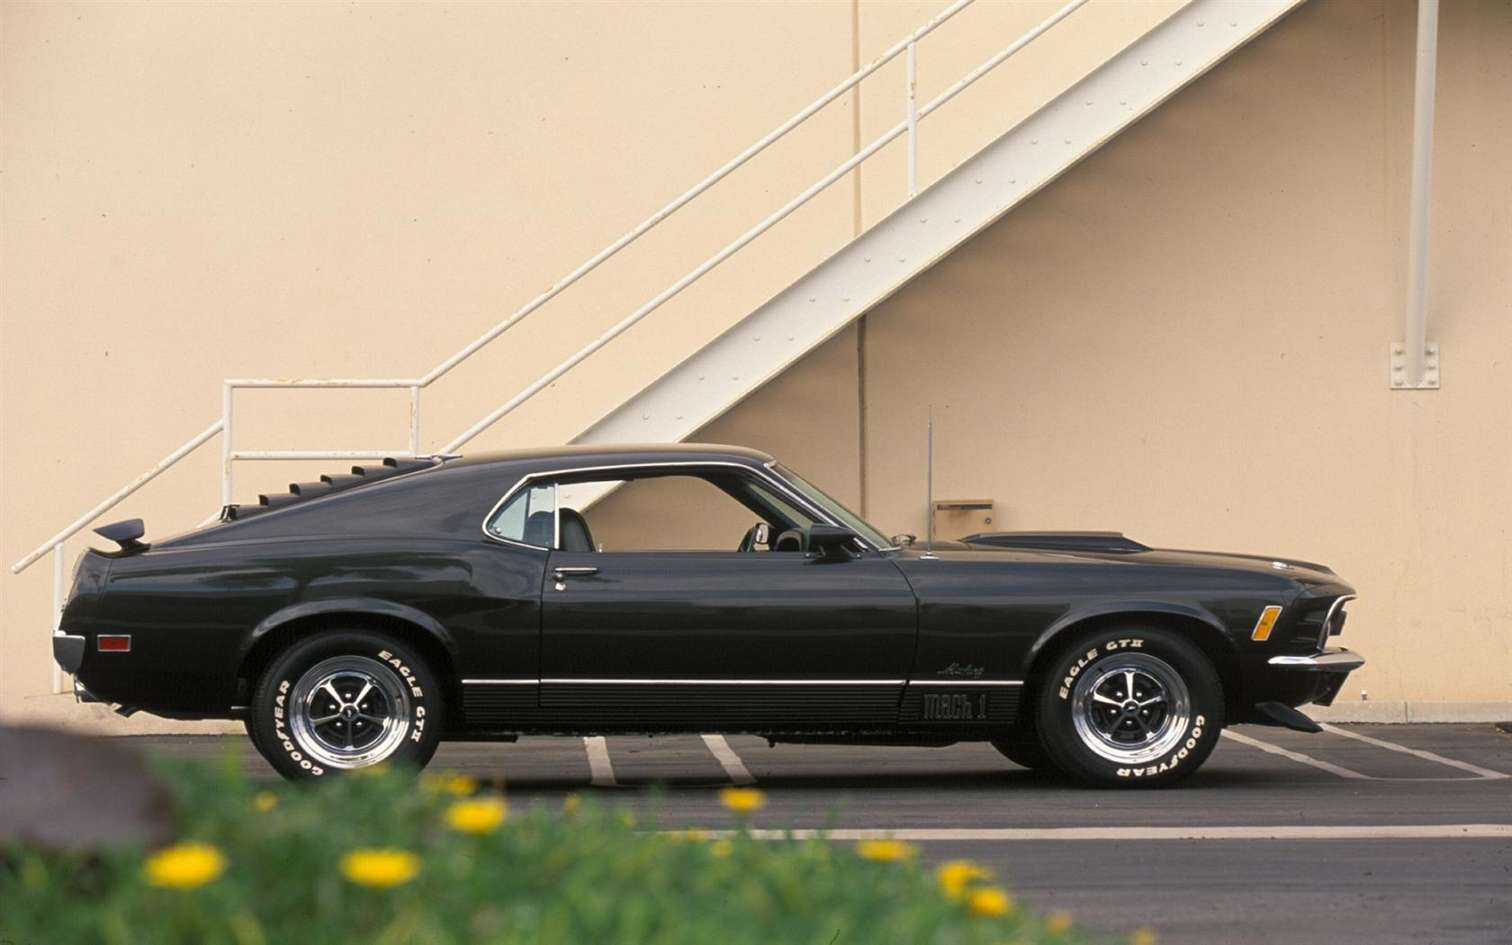 Ford Mustang Mach 1 #7372092